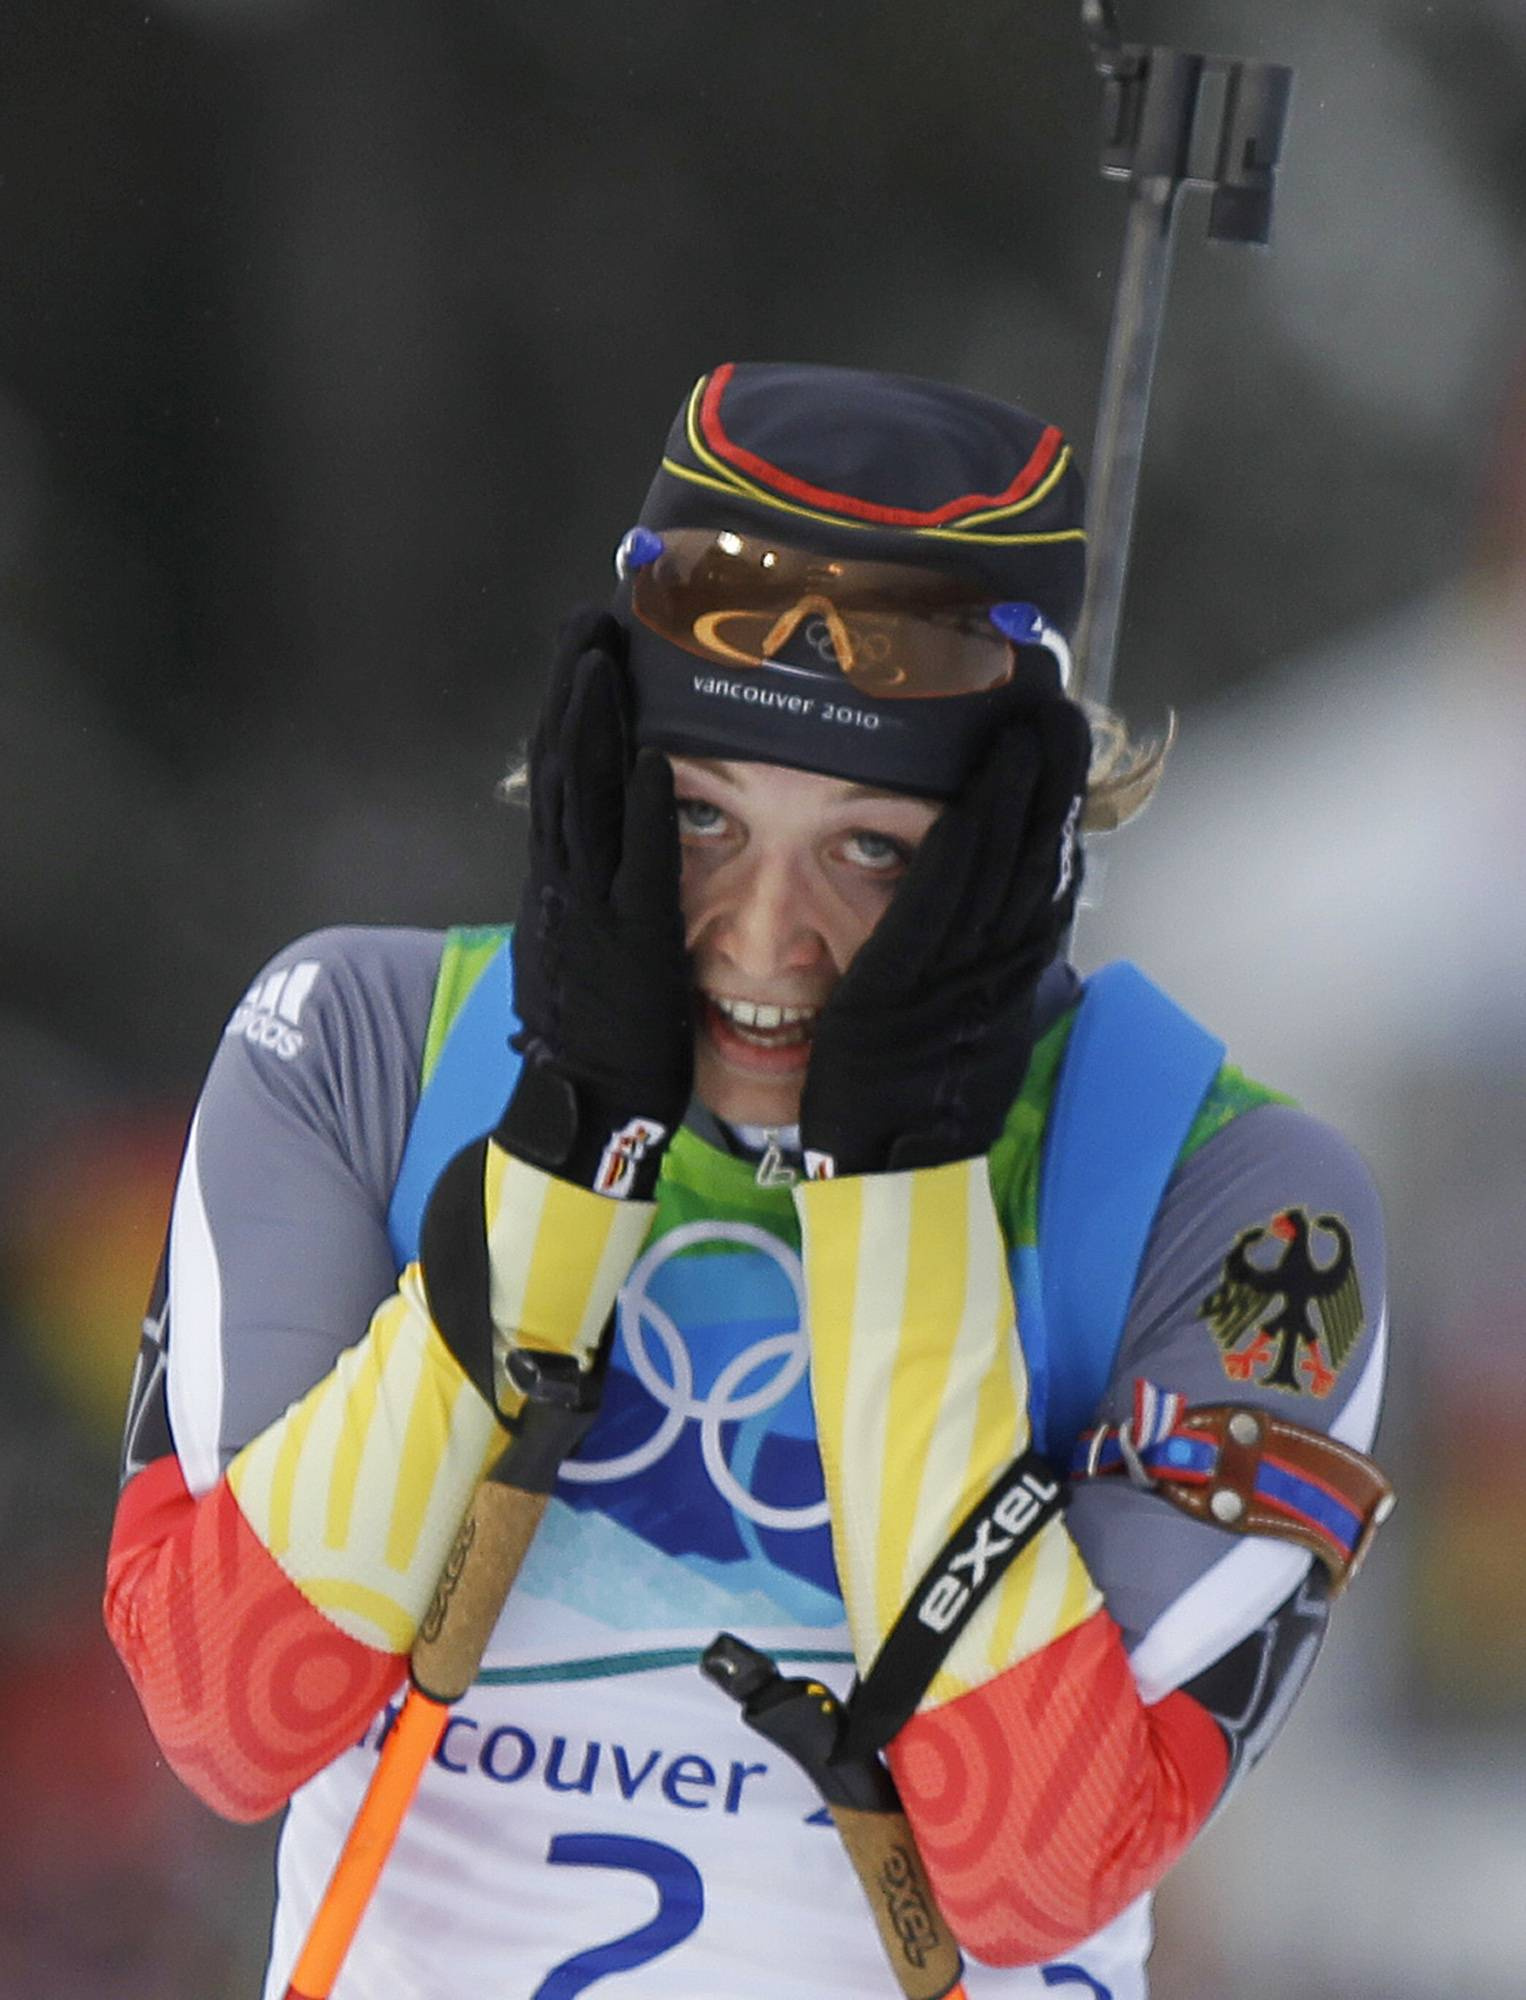 Germany's Magdalena Neuner celebrates as she crosses the finish line to win the women's biathlon 10 km pursuit race.